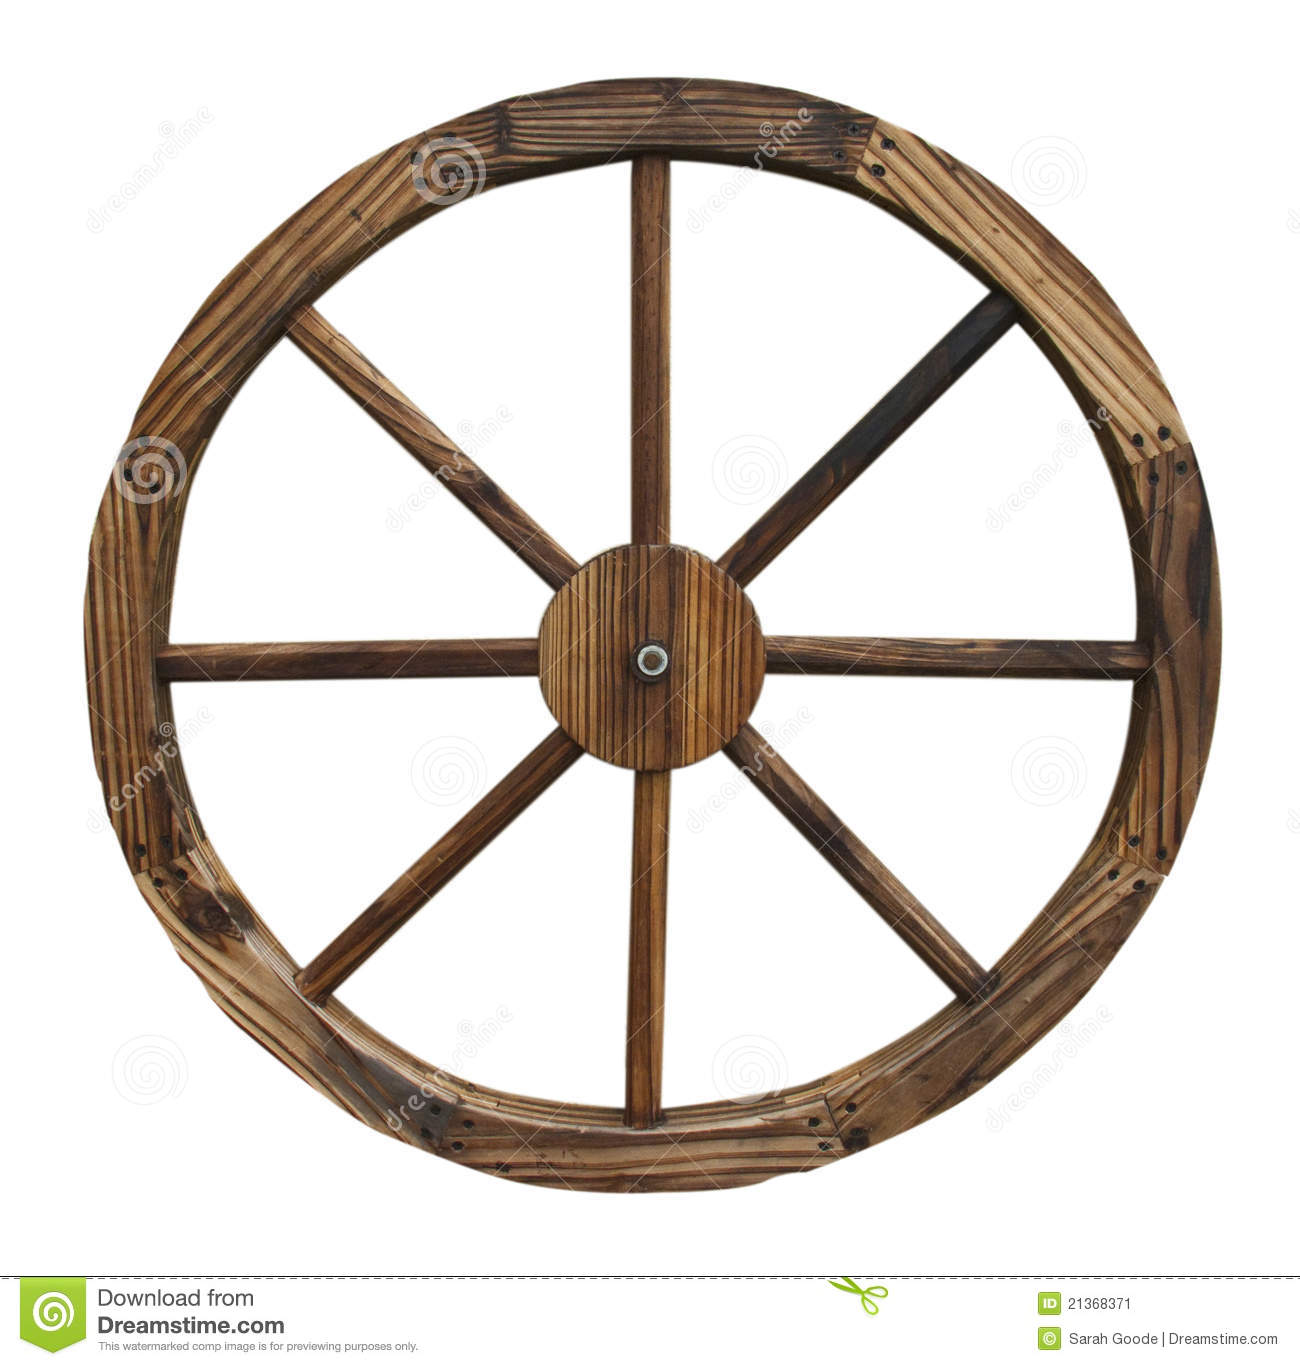 Wooden Wagon Wheels ~ Wooden wagon wheel isolated on white background stock